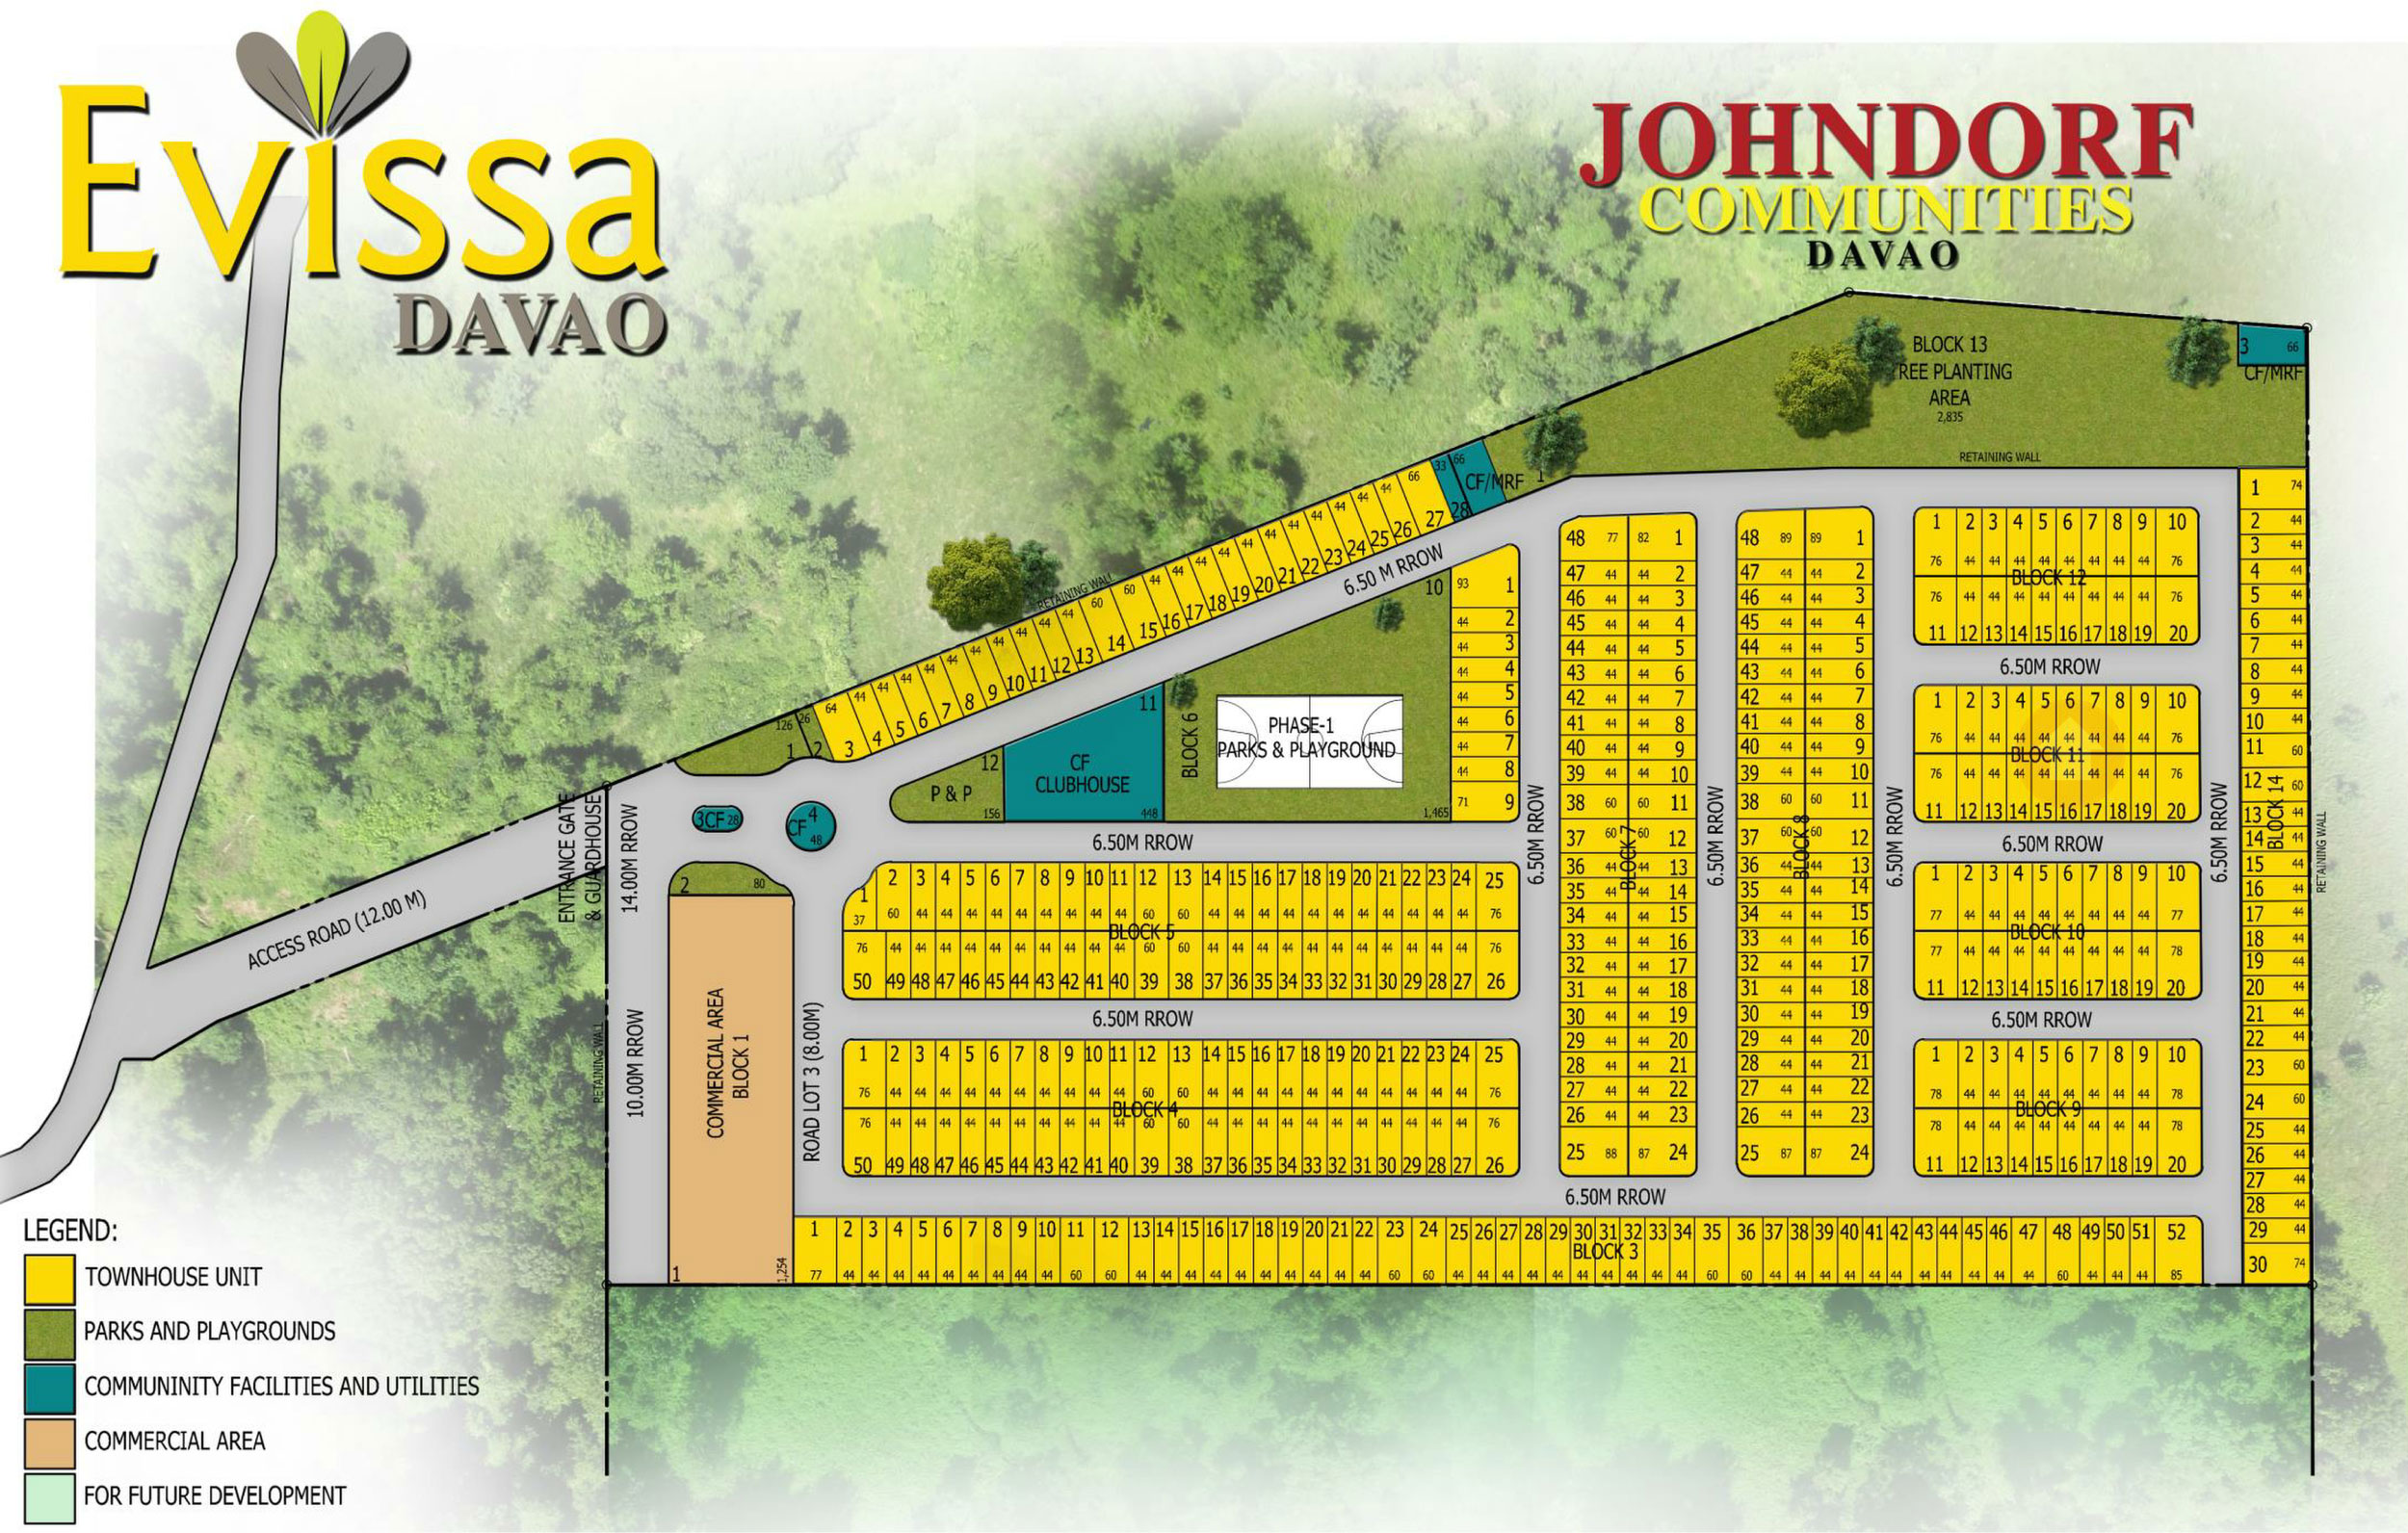 Evissa Davao Site Development Plan